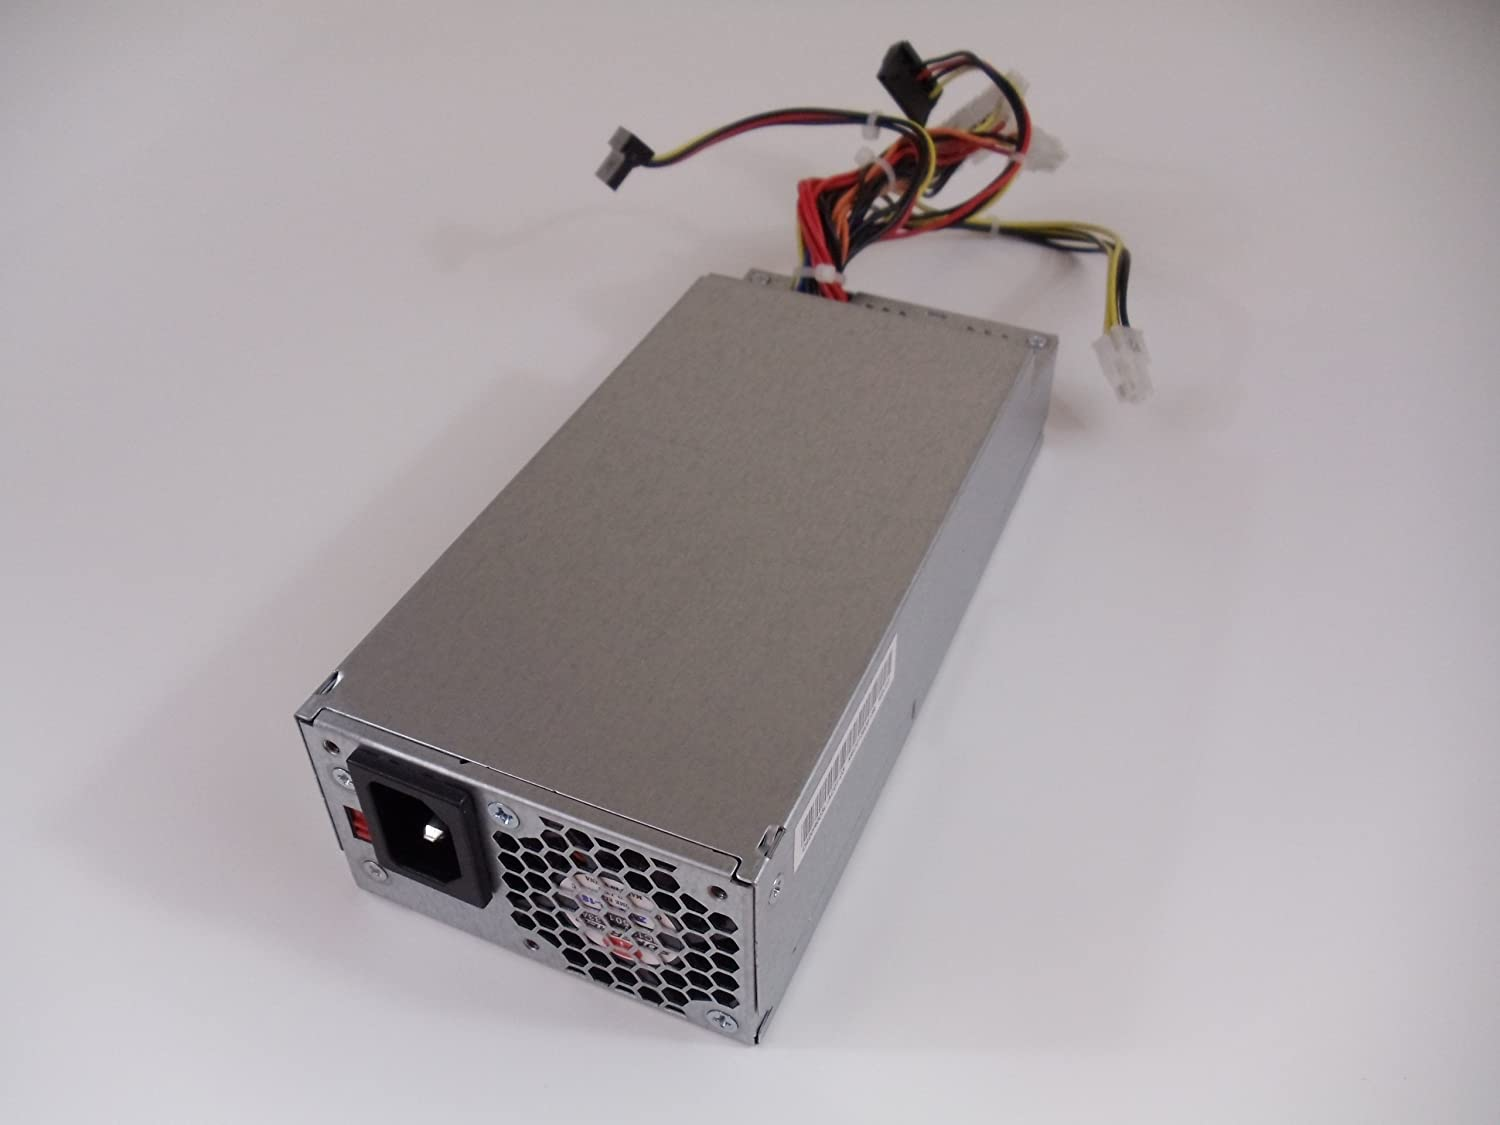 amazoncom genuine 220w power supply for acer emachines gateway series replacement model delta dps220ub a liteon ps52219 ps522106 acer aspire